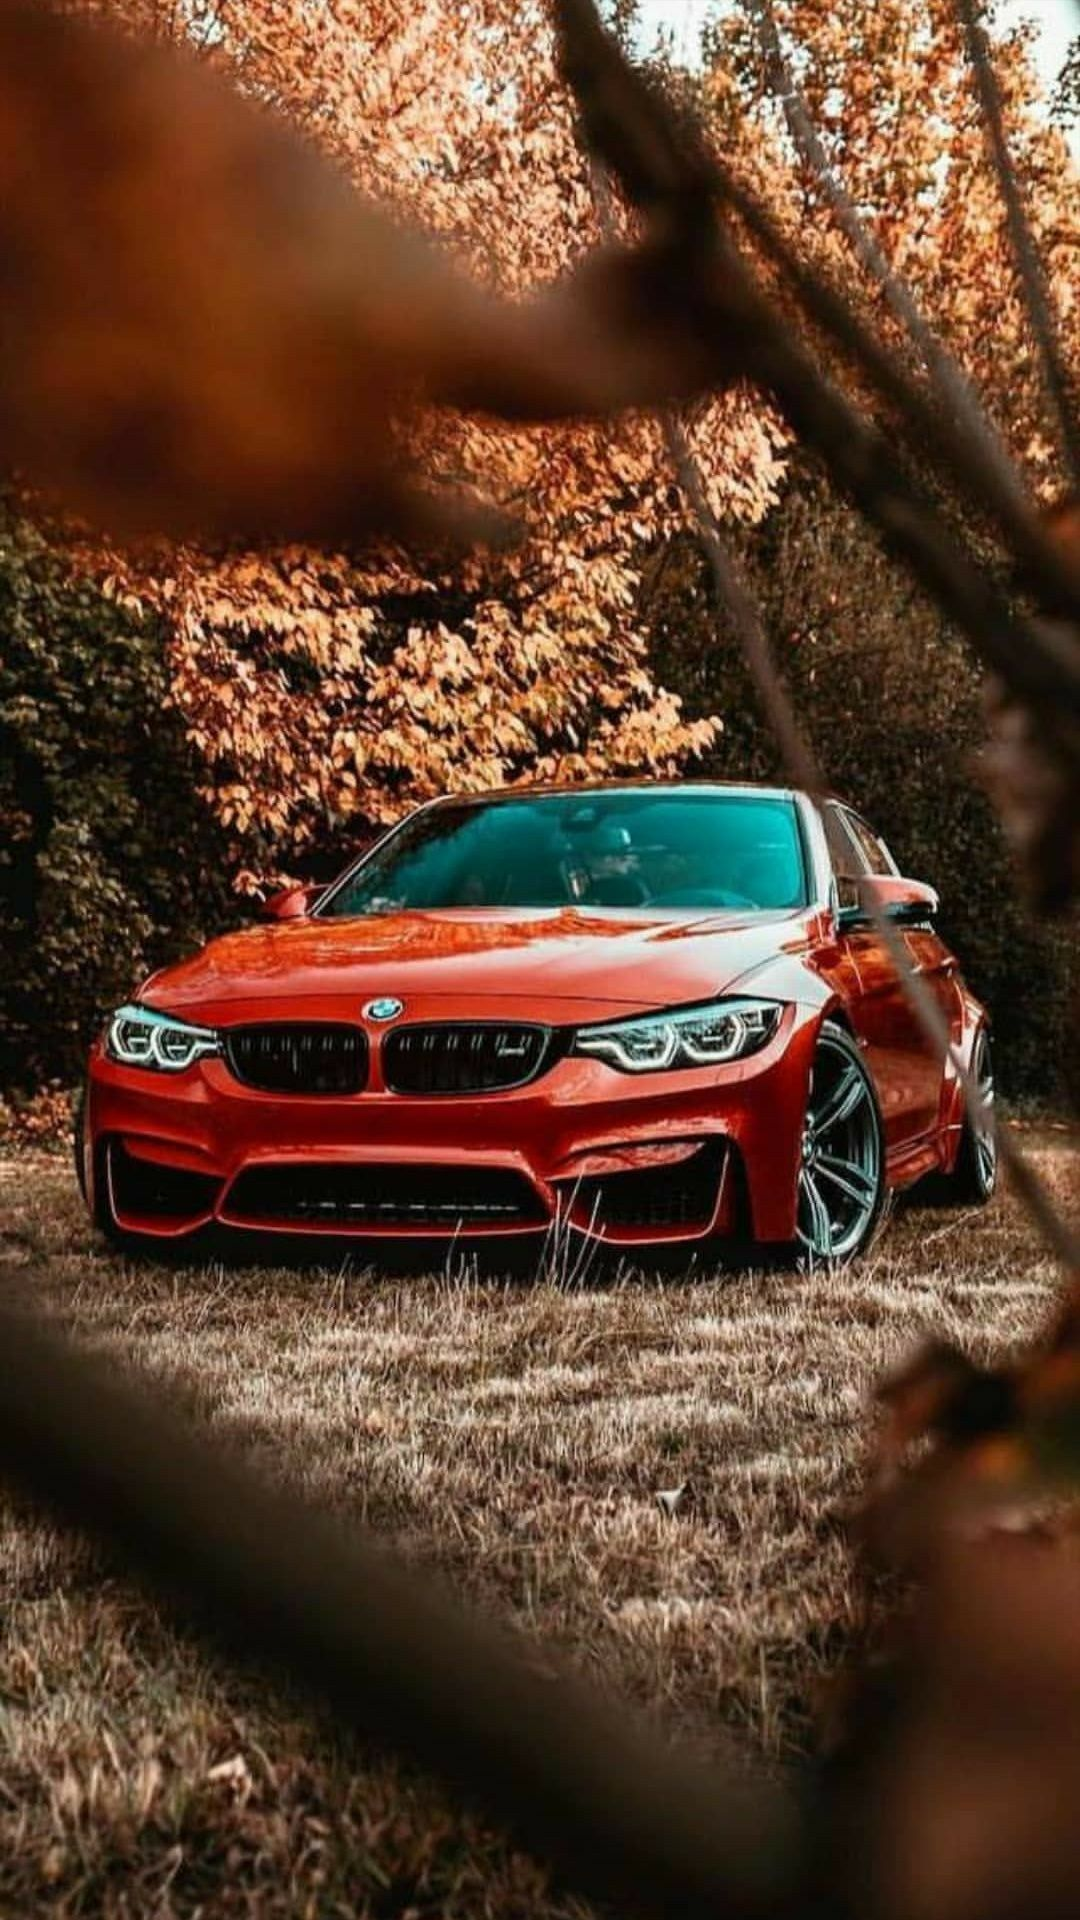 Pin By Ani Liparteliani On Nature Photography In 2020 Bmw M3 Wallpaper Luxury Cars Bmw Dream Cars Bmw